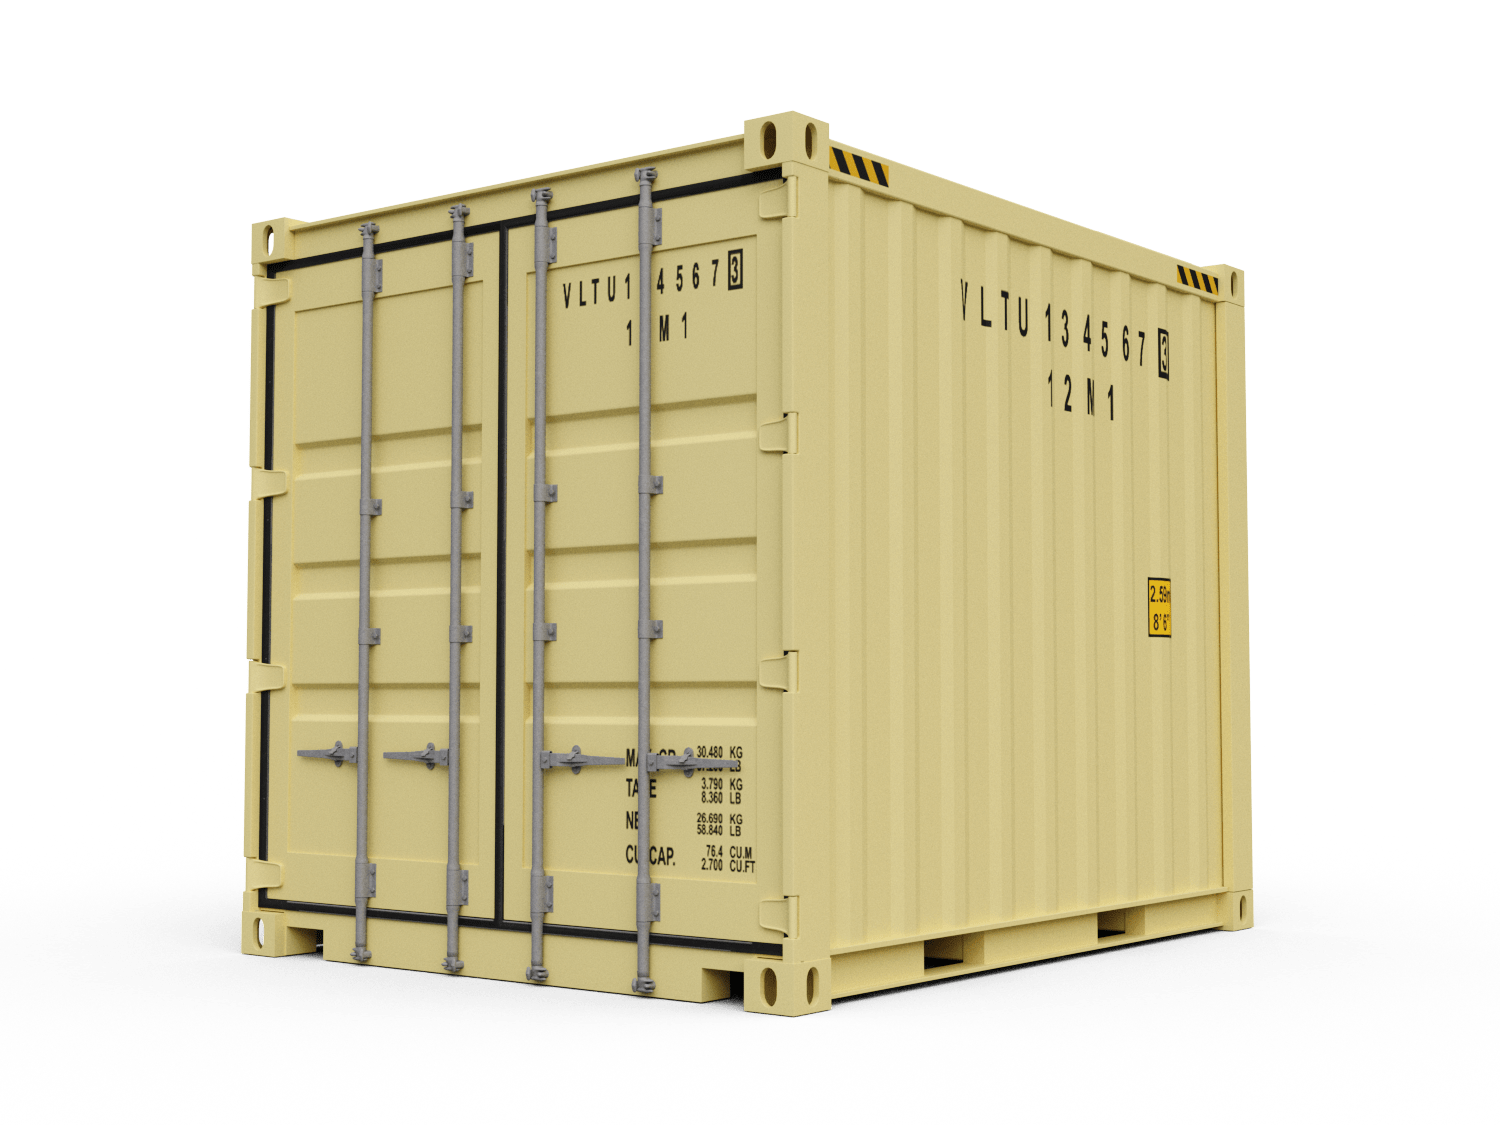 10 Foot Shipping Containers For Sale